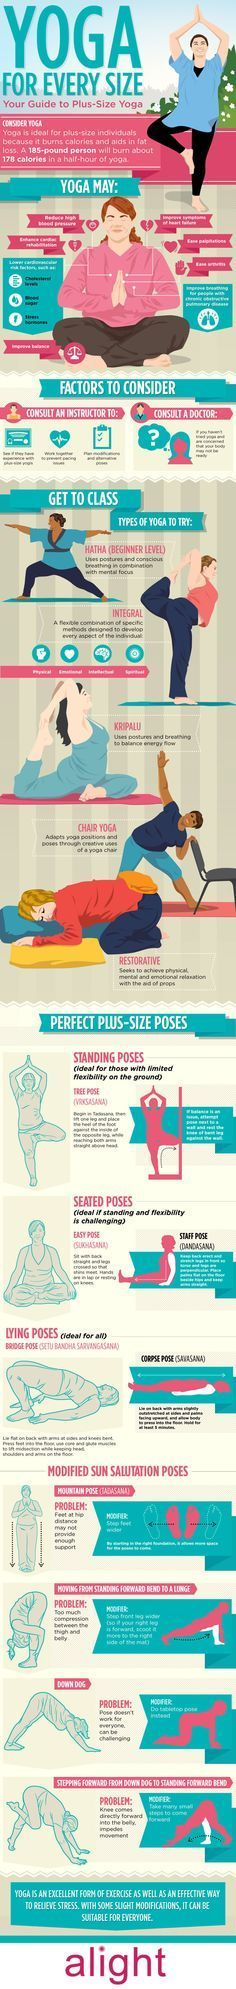 Yoga For Every Size A Guide To Plus Fitness How Exercise Health Healthy Living Home Tutorials Poses Exercising Self Help